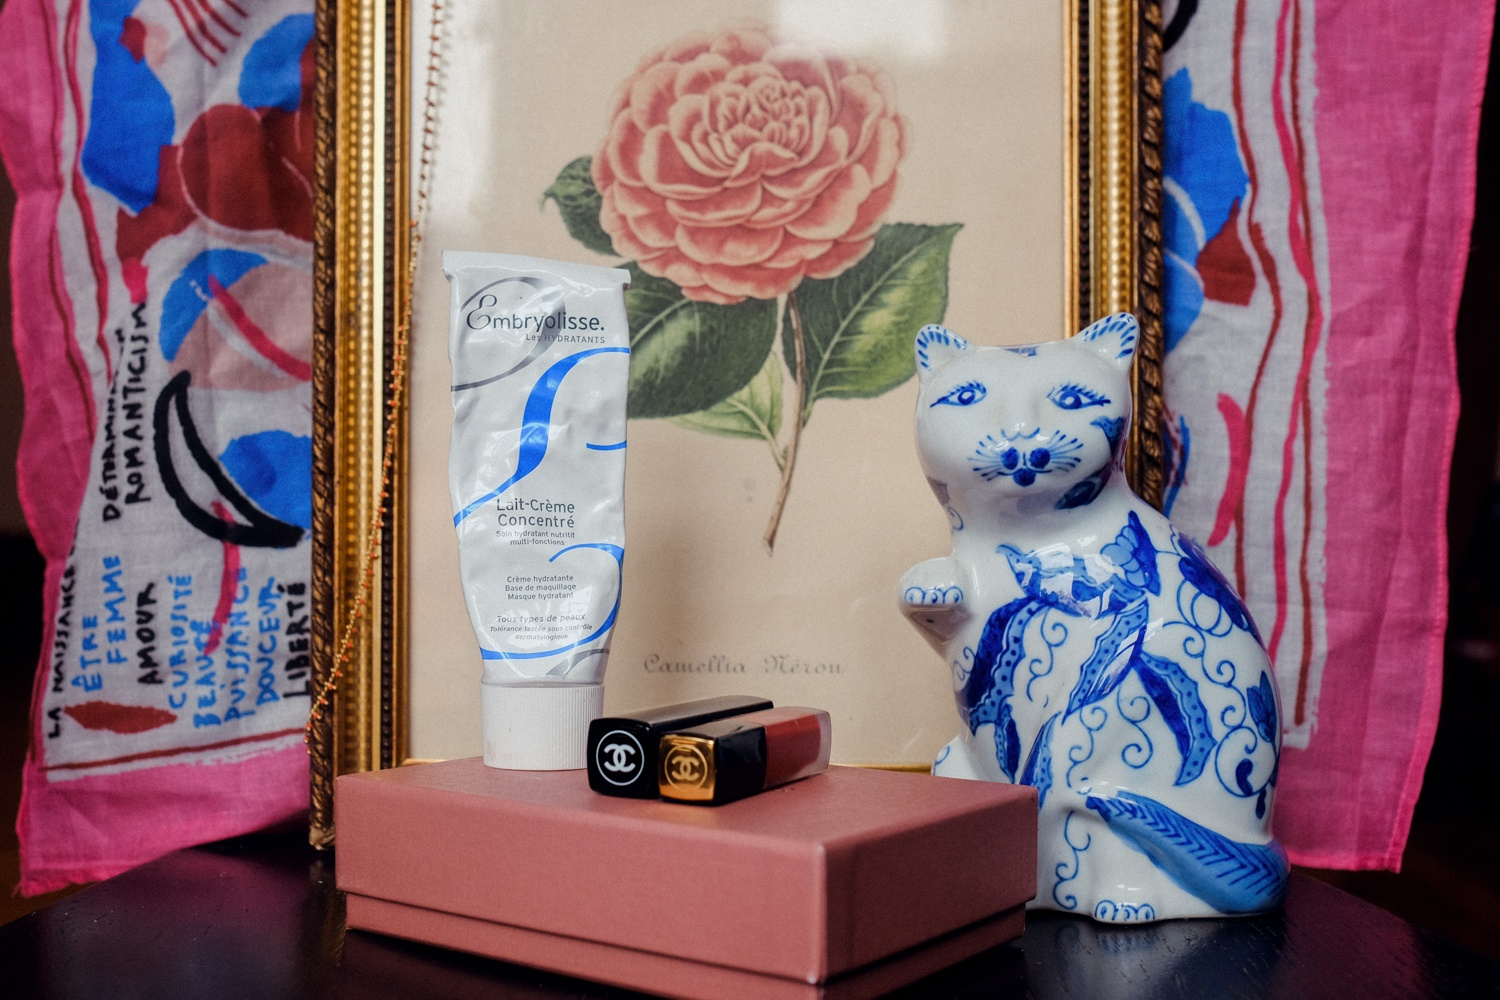 Where to find unique souvenirs from Paris on your trip!